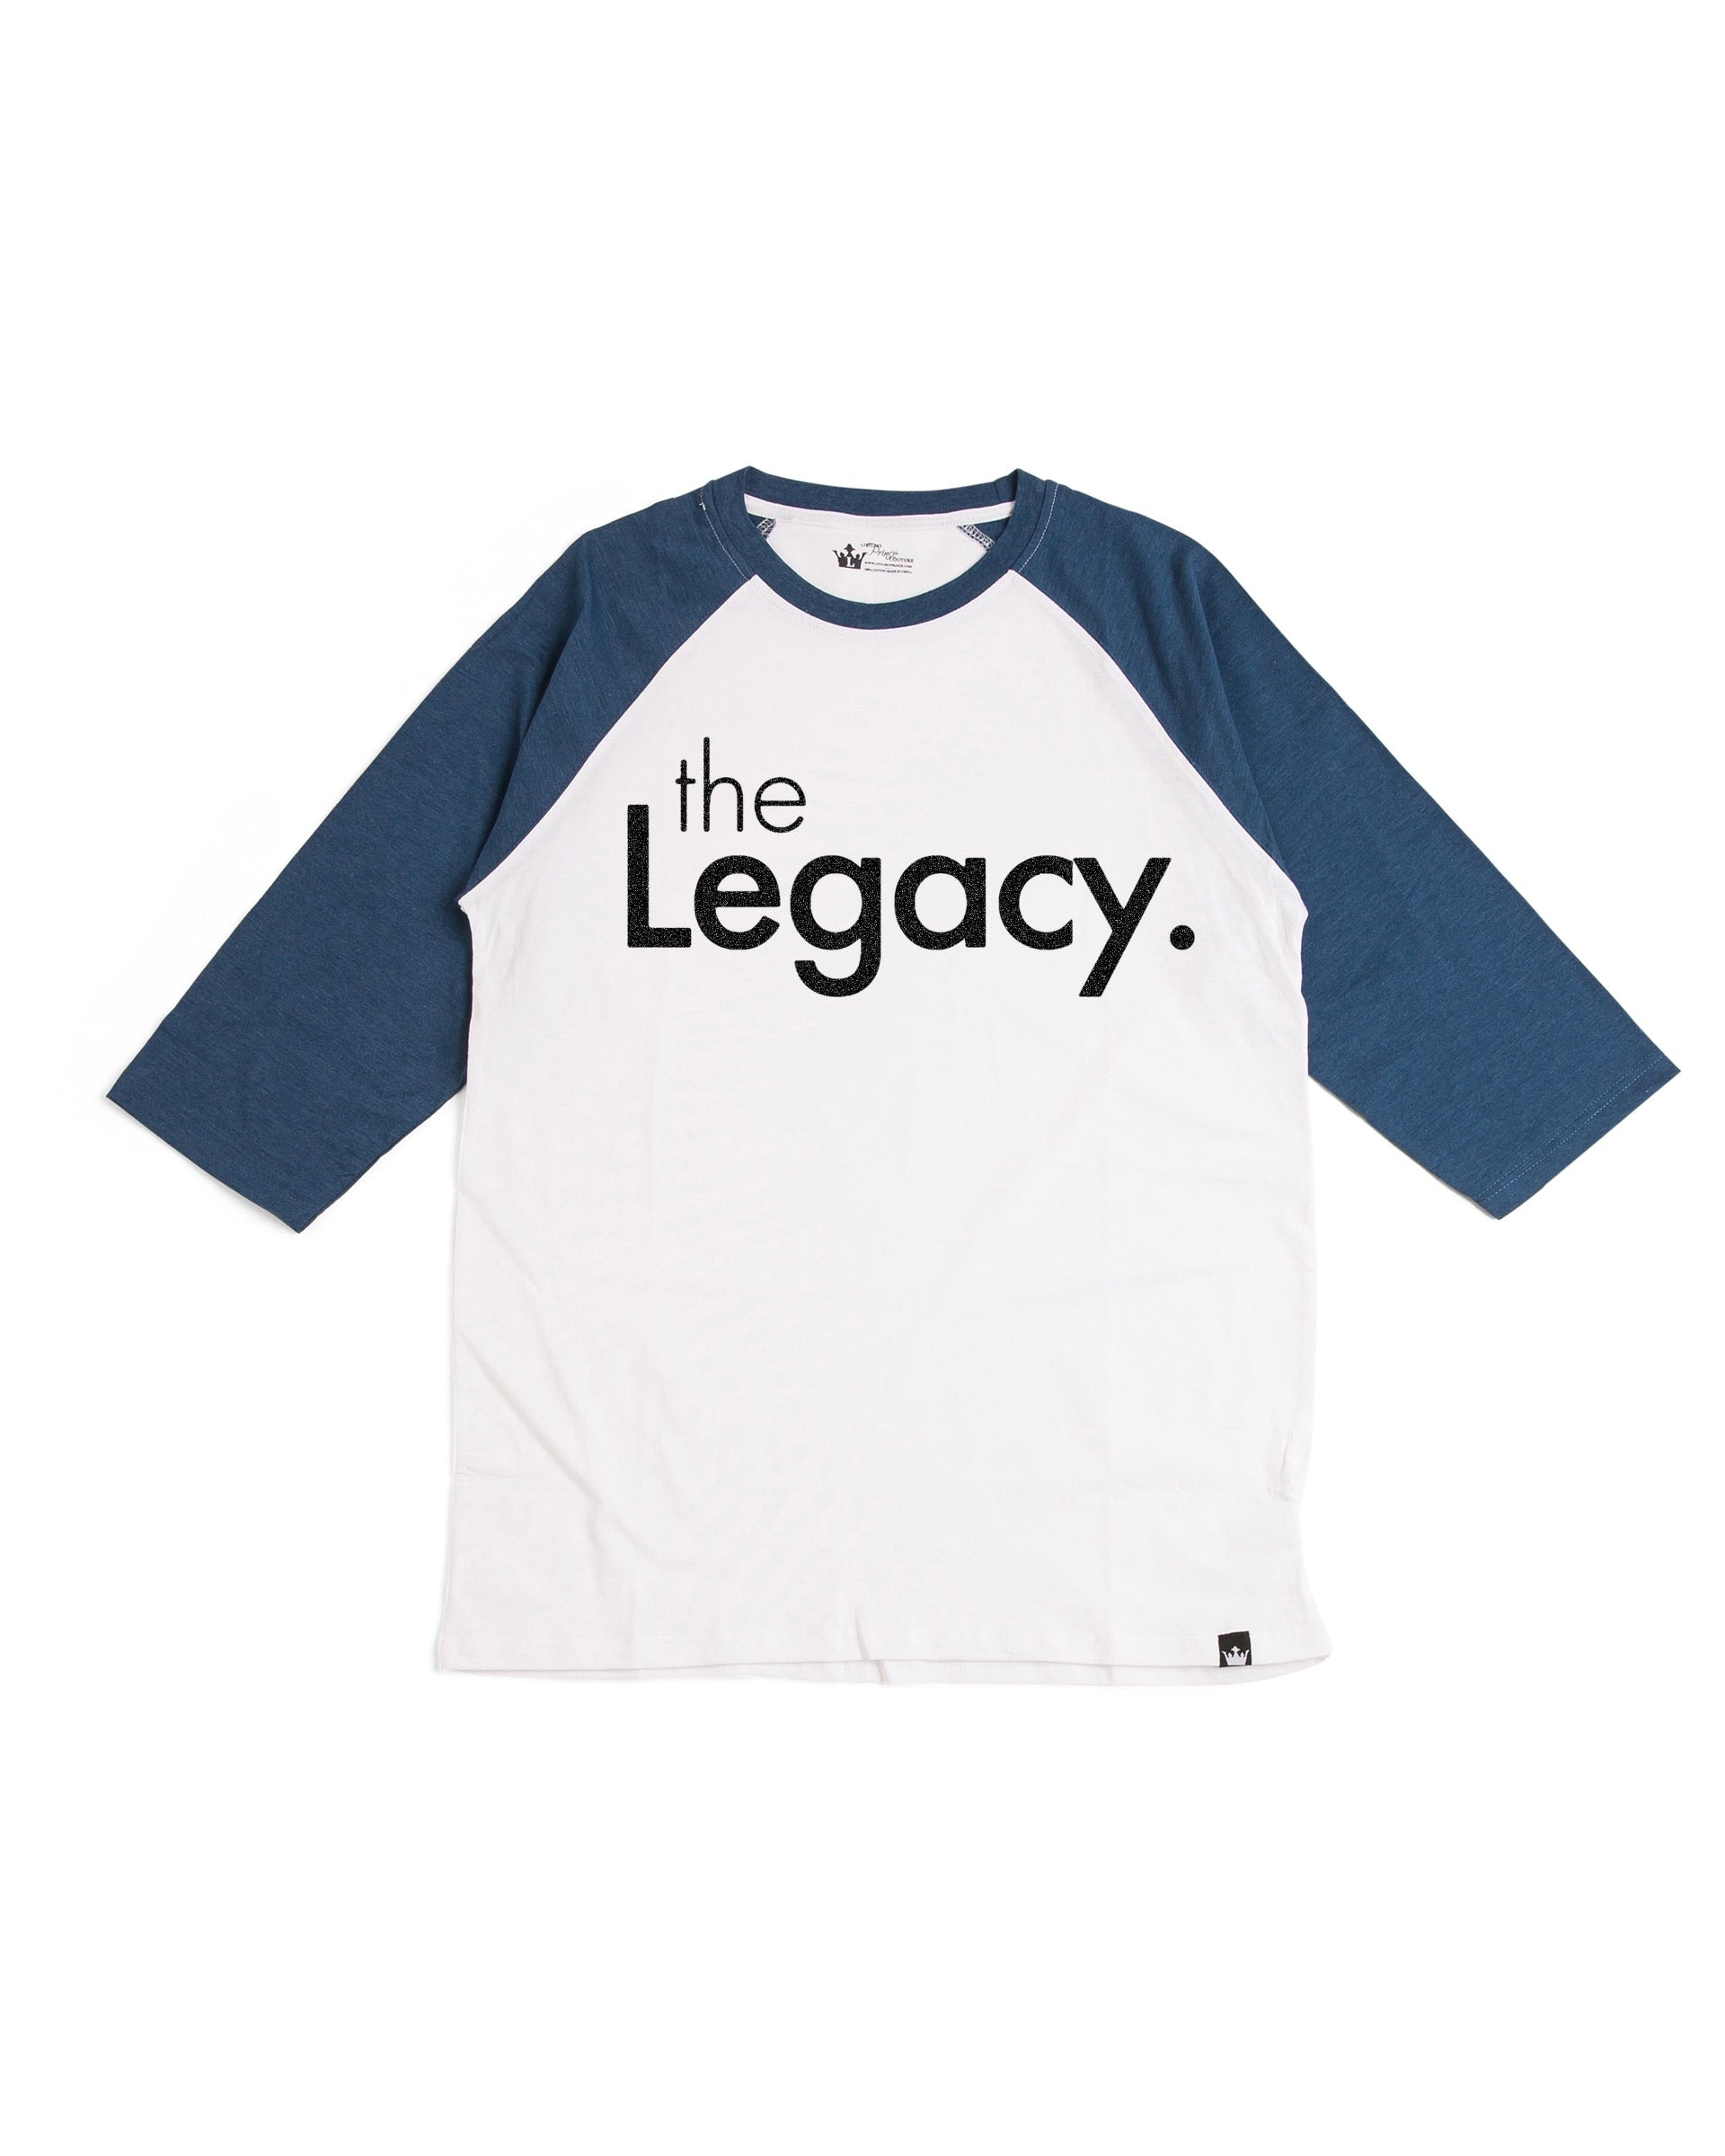 fds-leg-nhsr-the-legacy-navy-white-half-sleeve-raglan-shirt.jpg